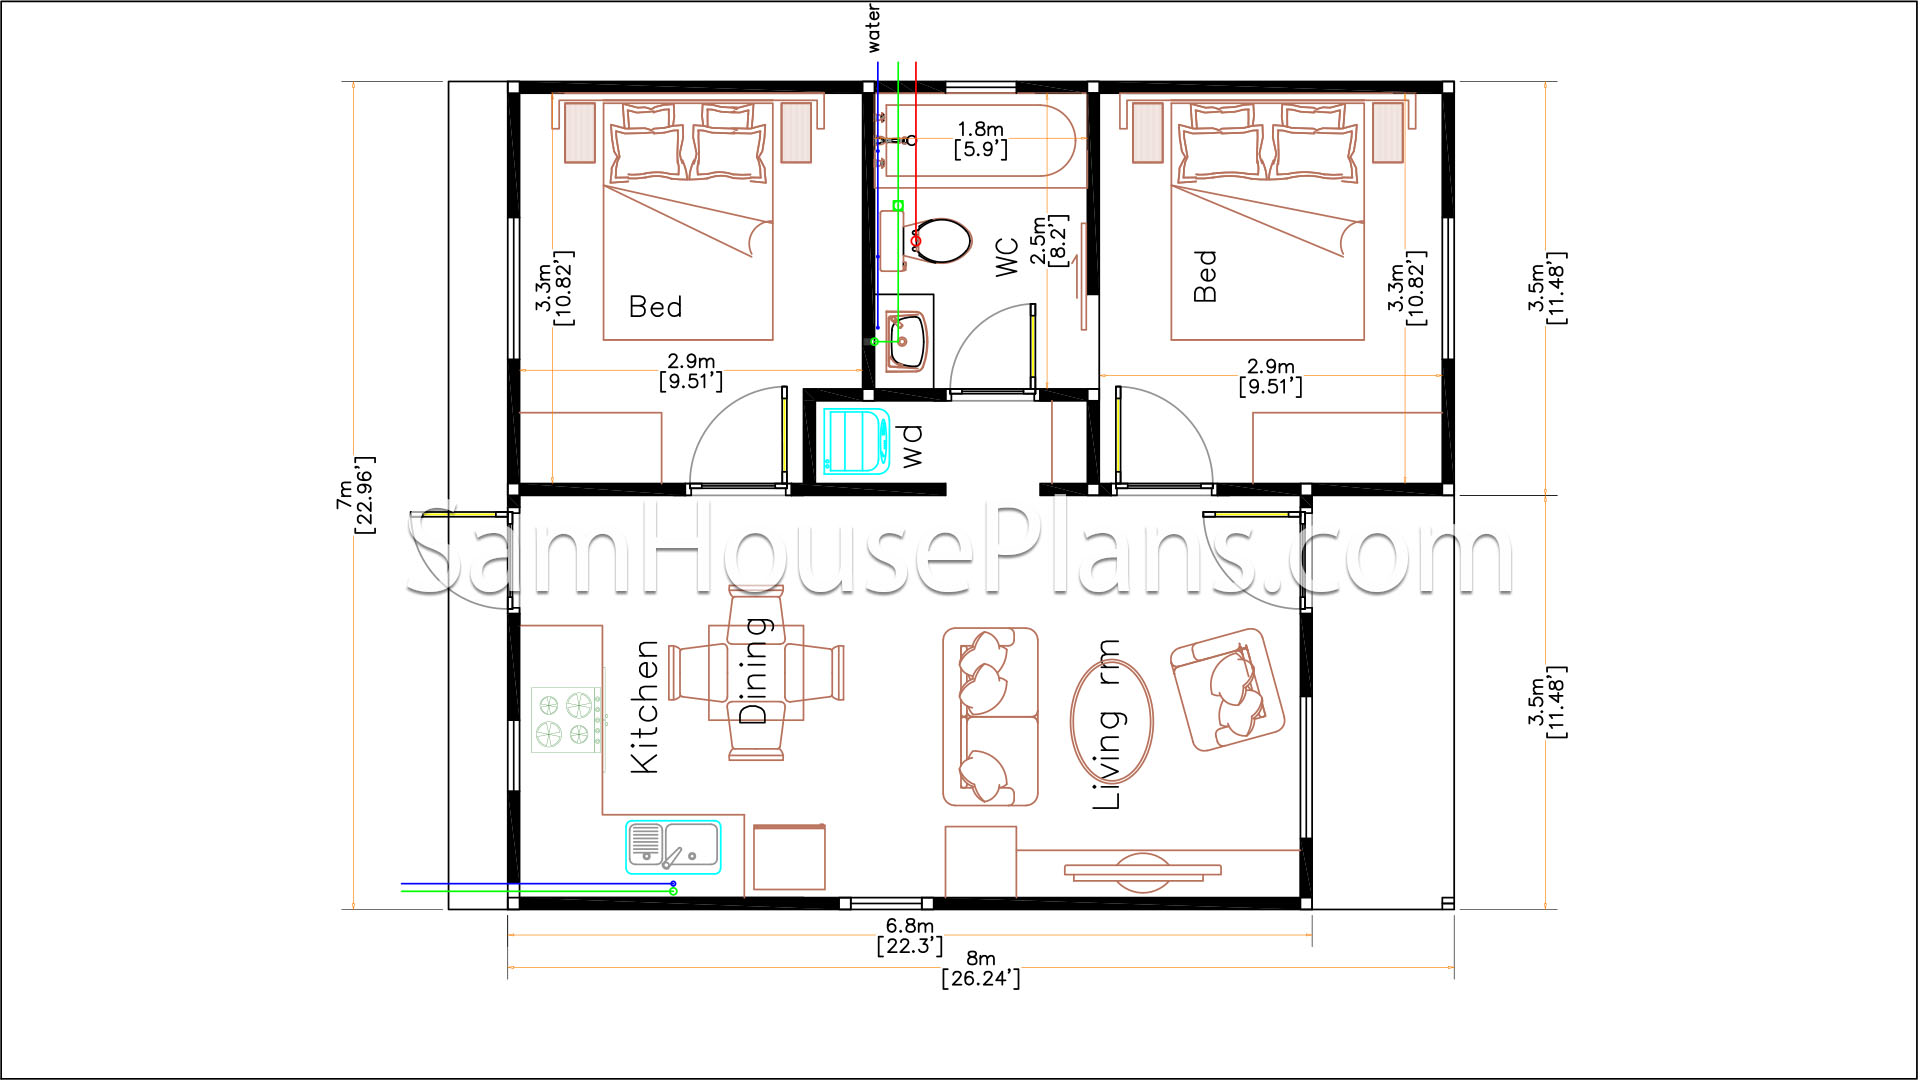 Small House Floor Plans 7x8 Meter 24x26 Feet 2 Bedrooms Full Plans floor plan